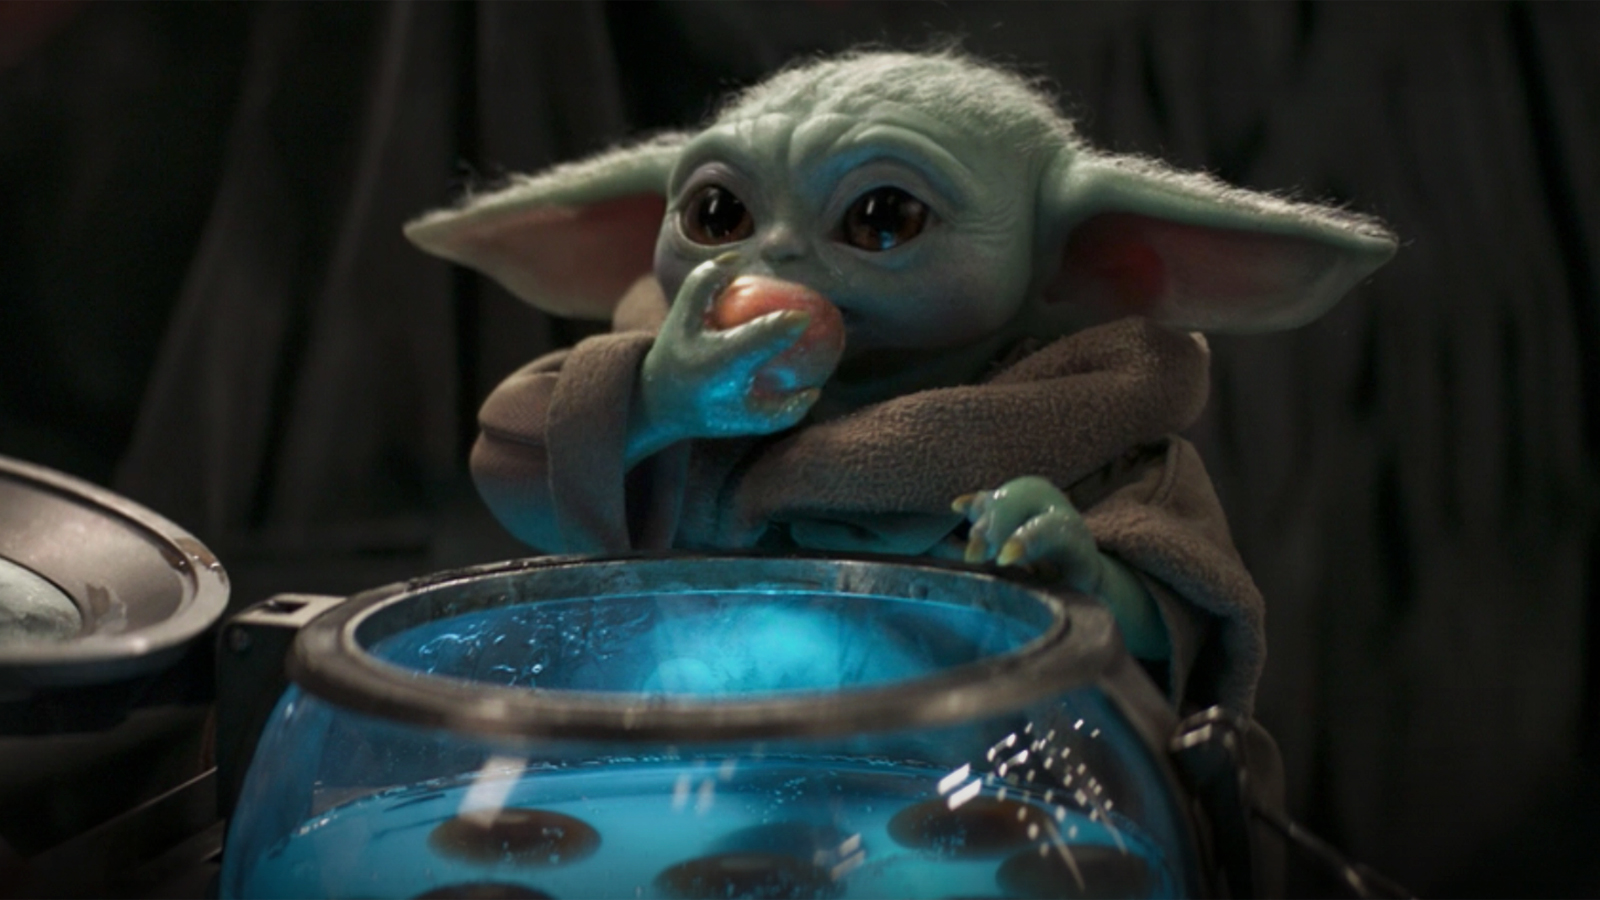 Baby Yoda eating eggs in The Mandalorian